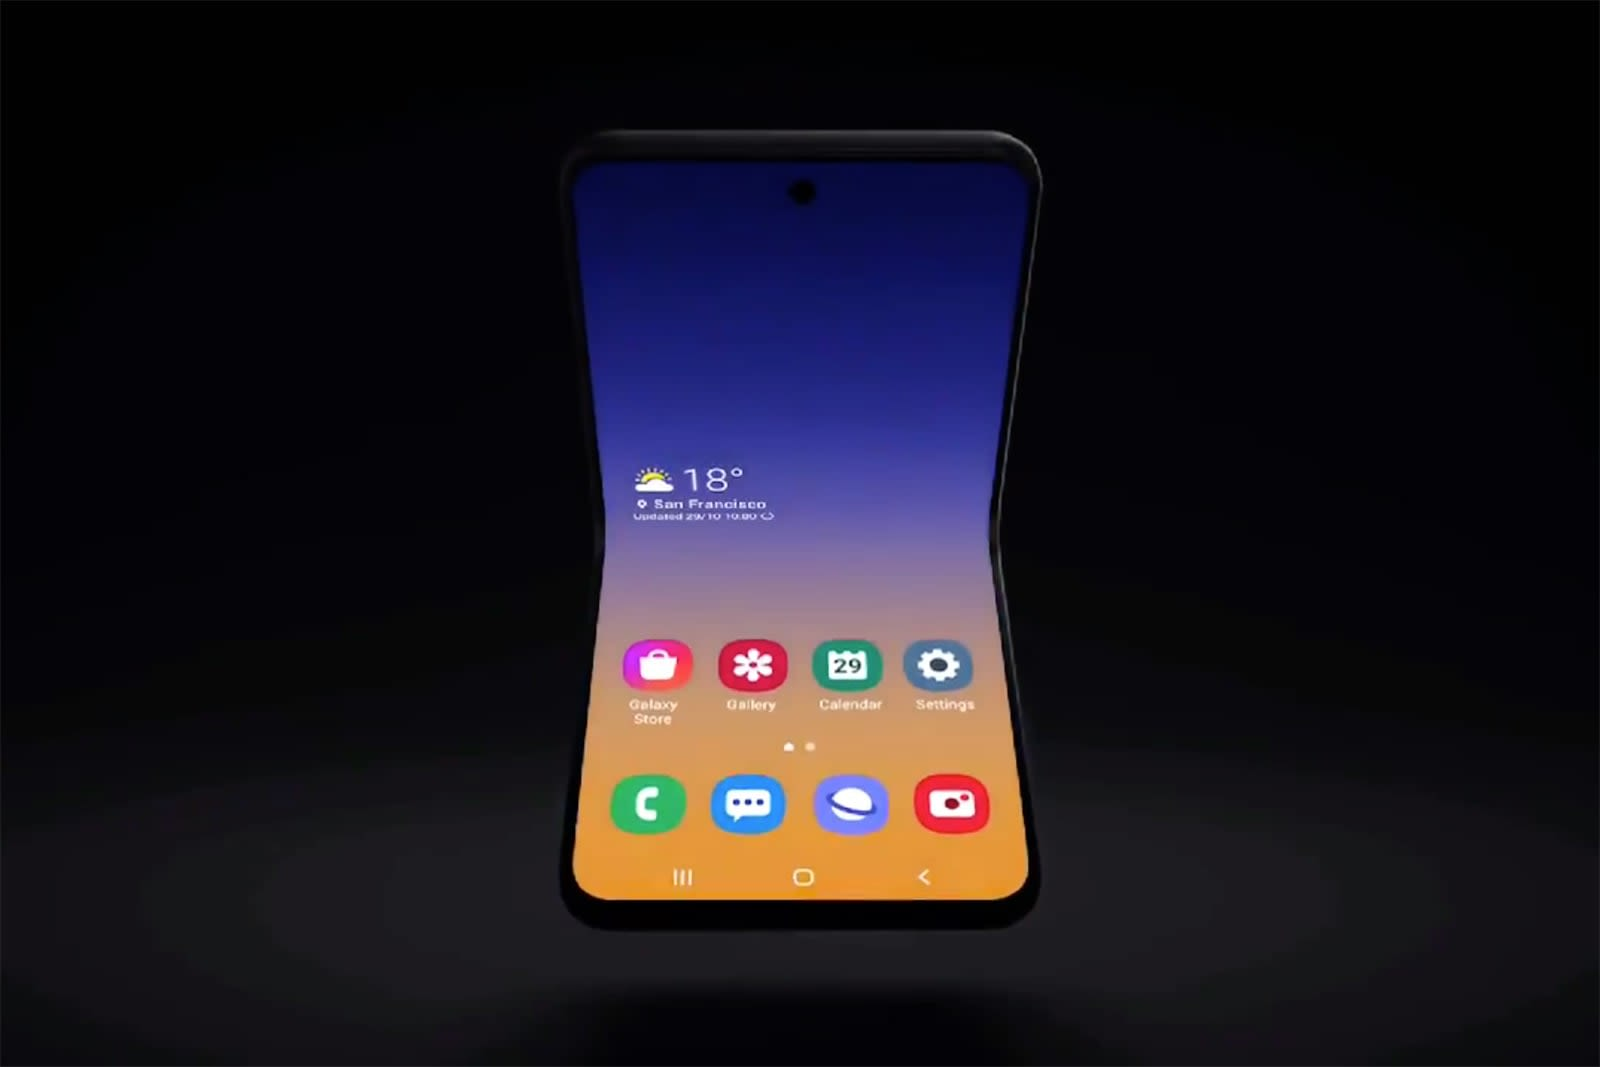 Samsung teases a clamshell foldable phone concept